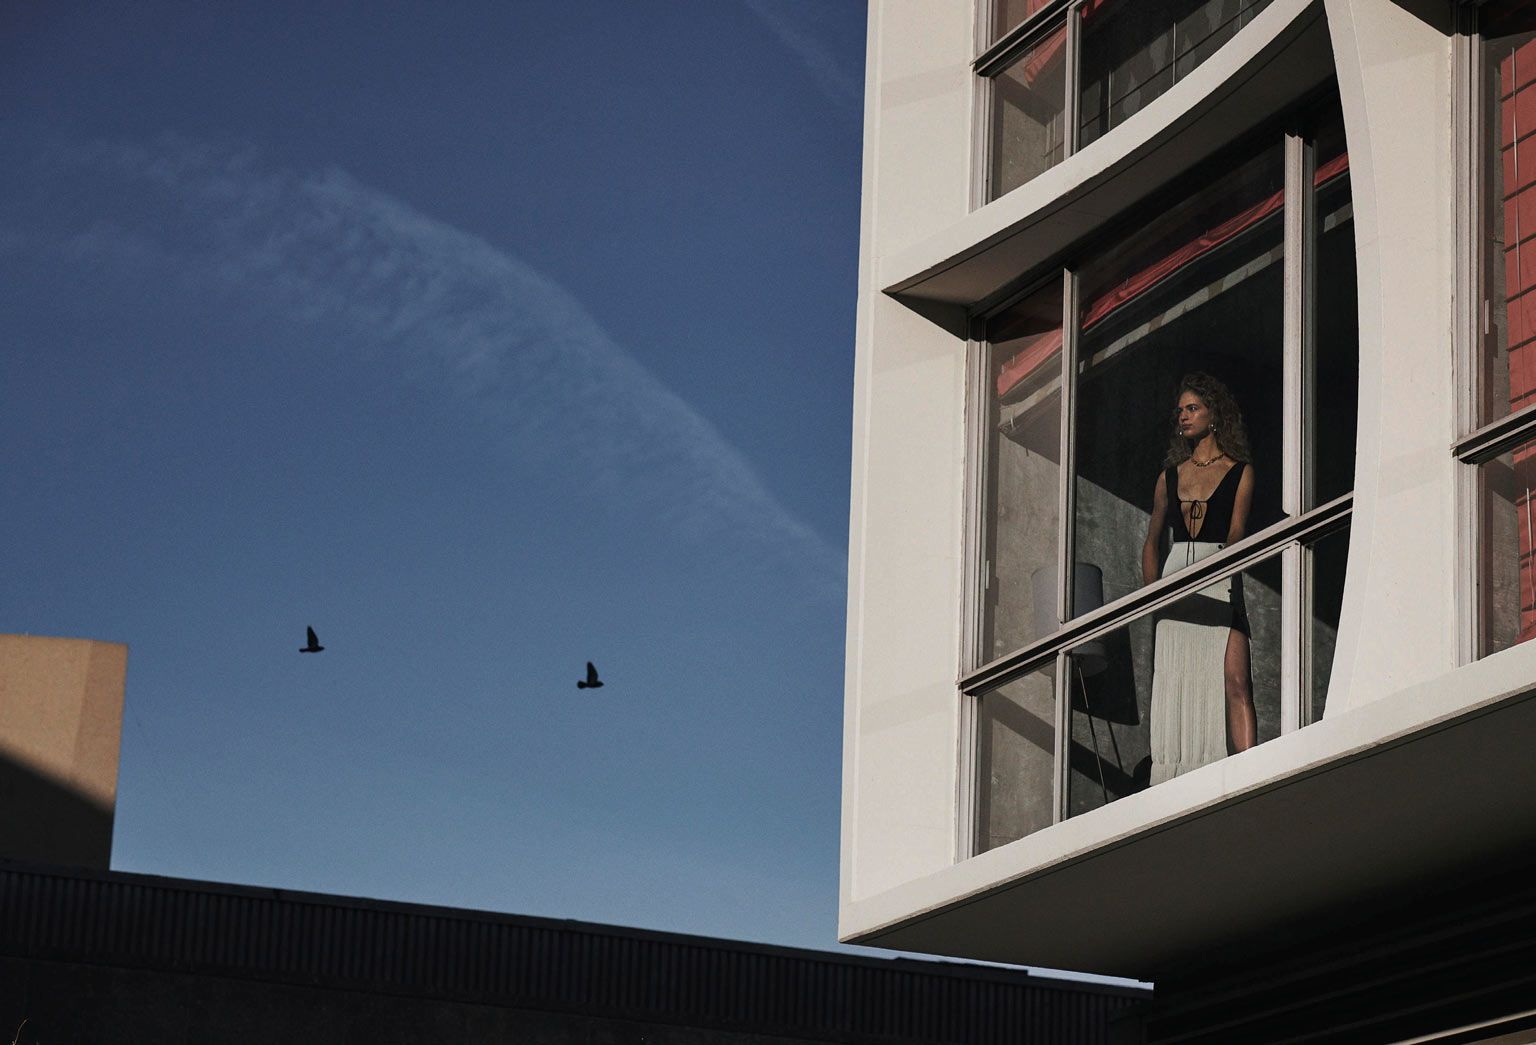 Vanessa Axente stands by window